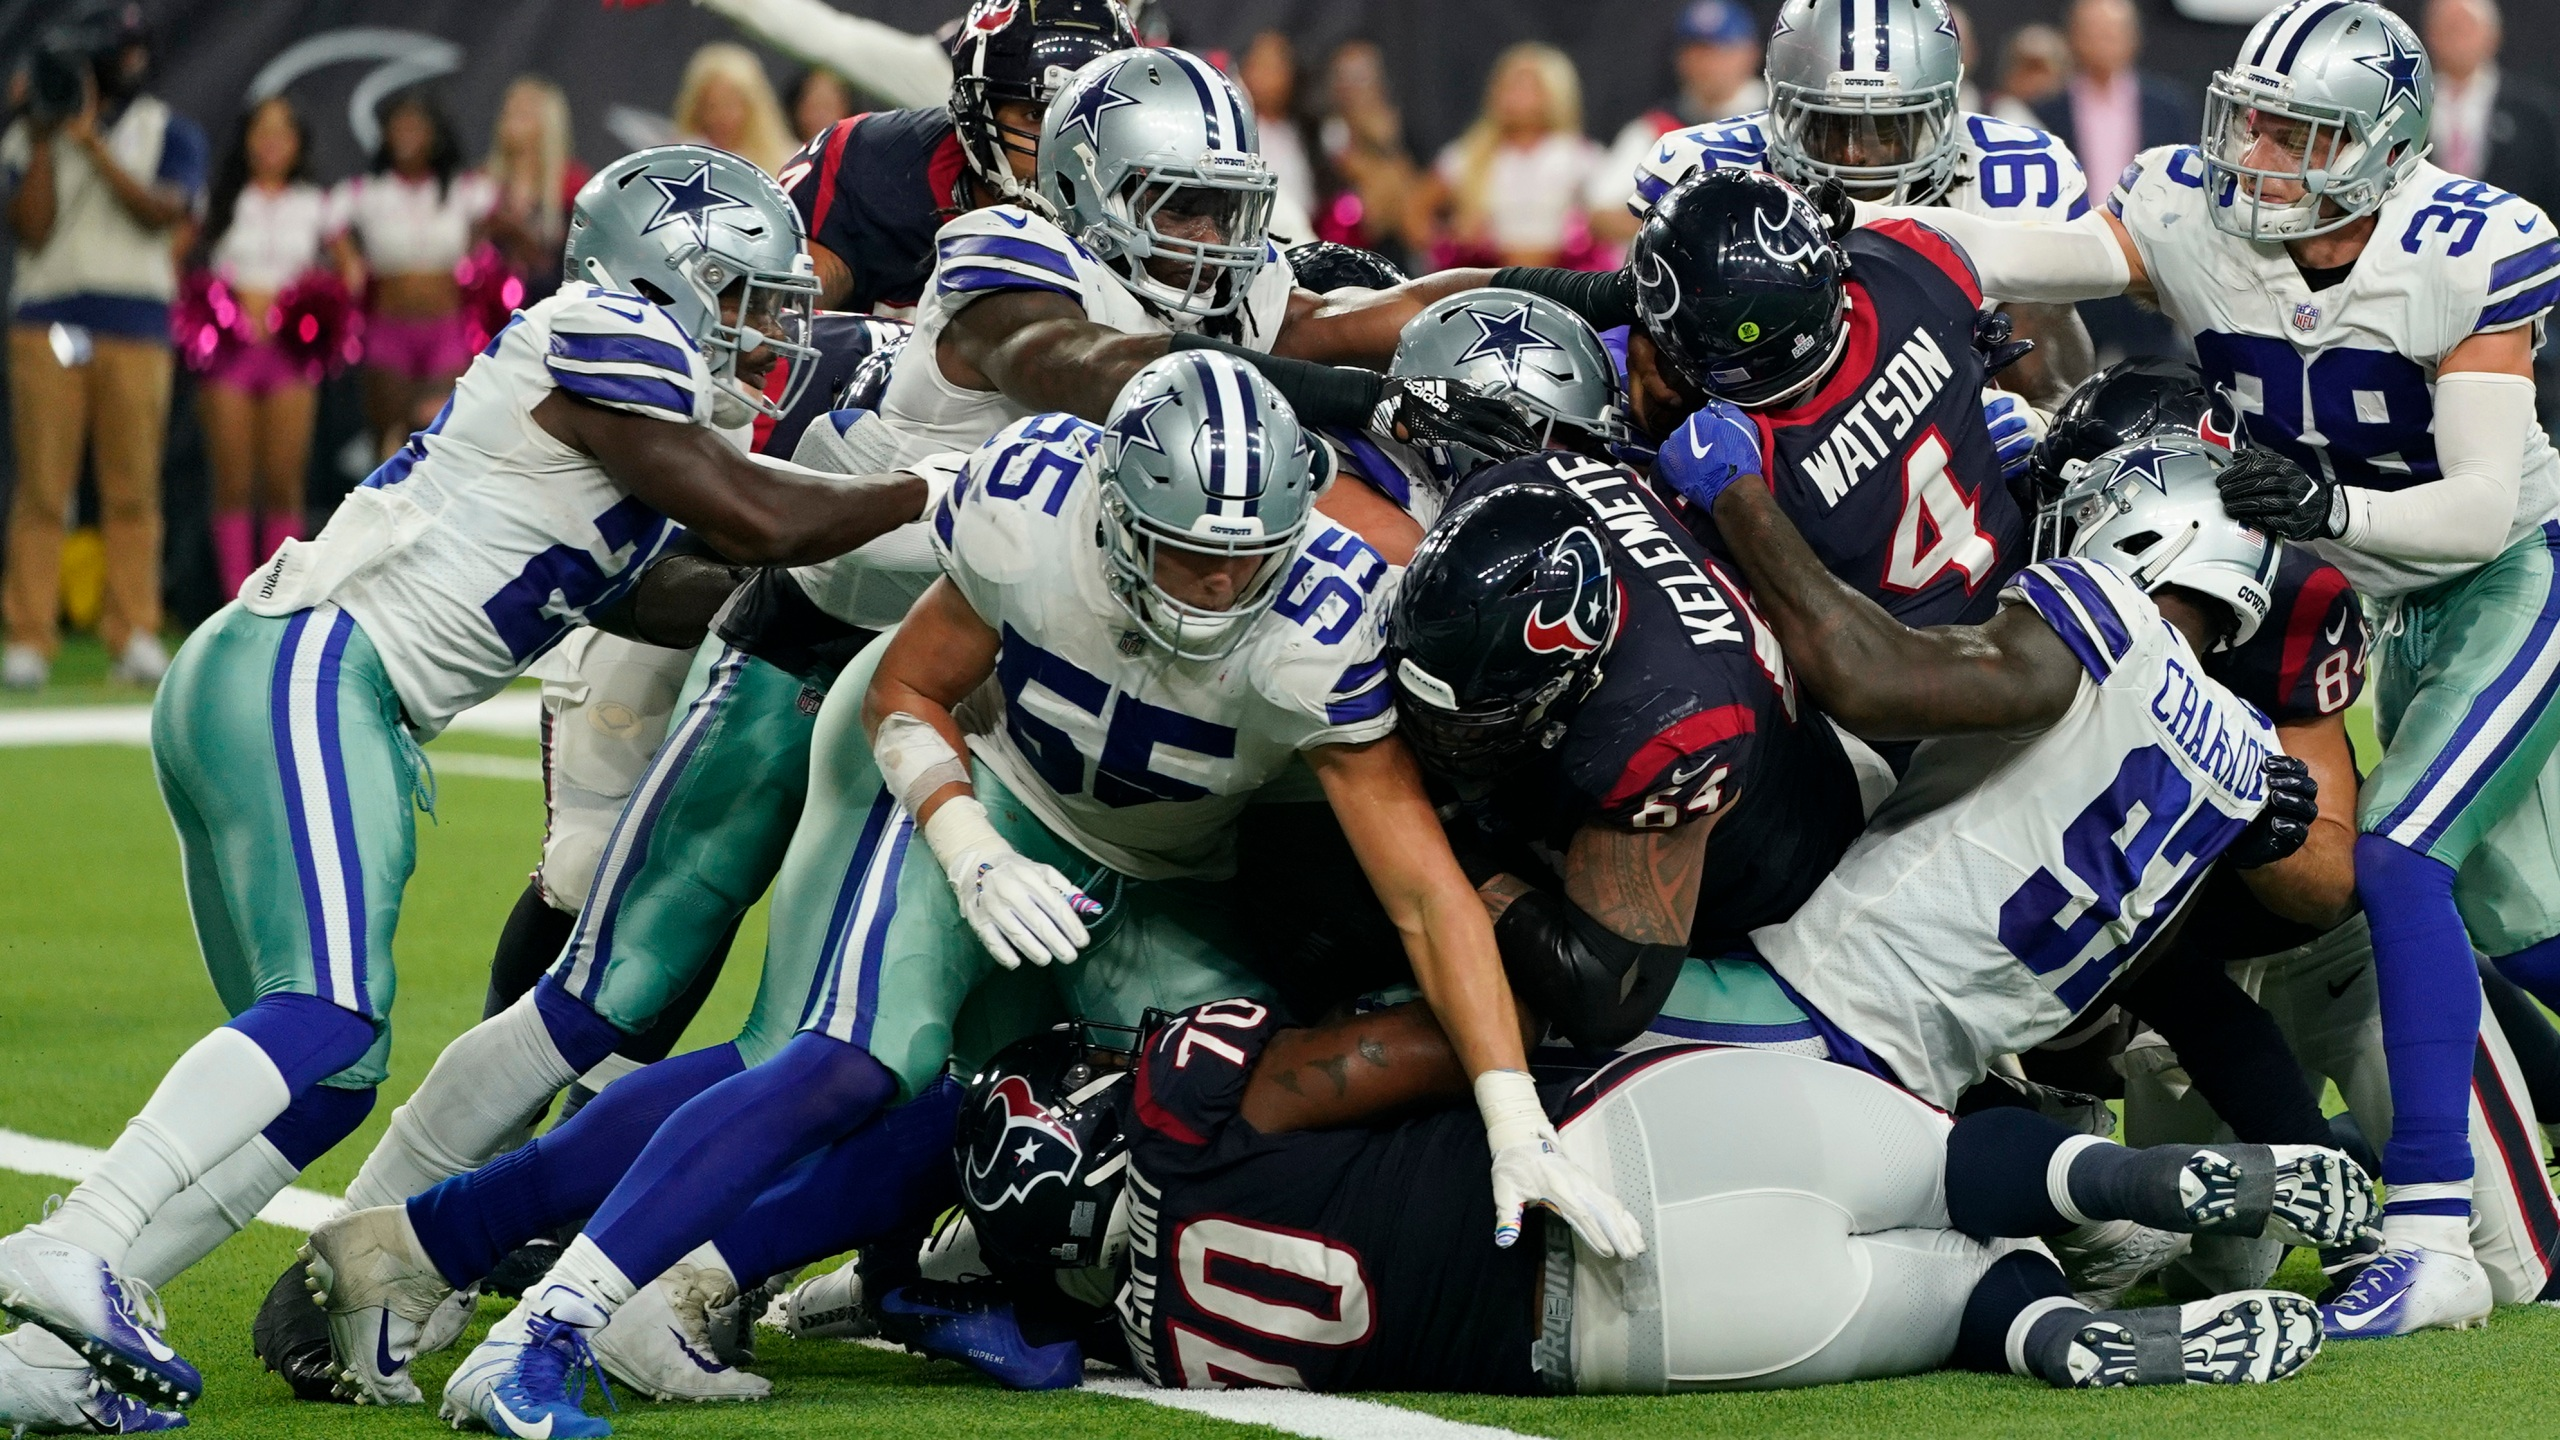 Cowboys_Texans_Football_54925-159532-159532.jpg79612052